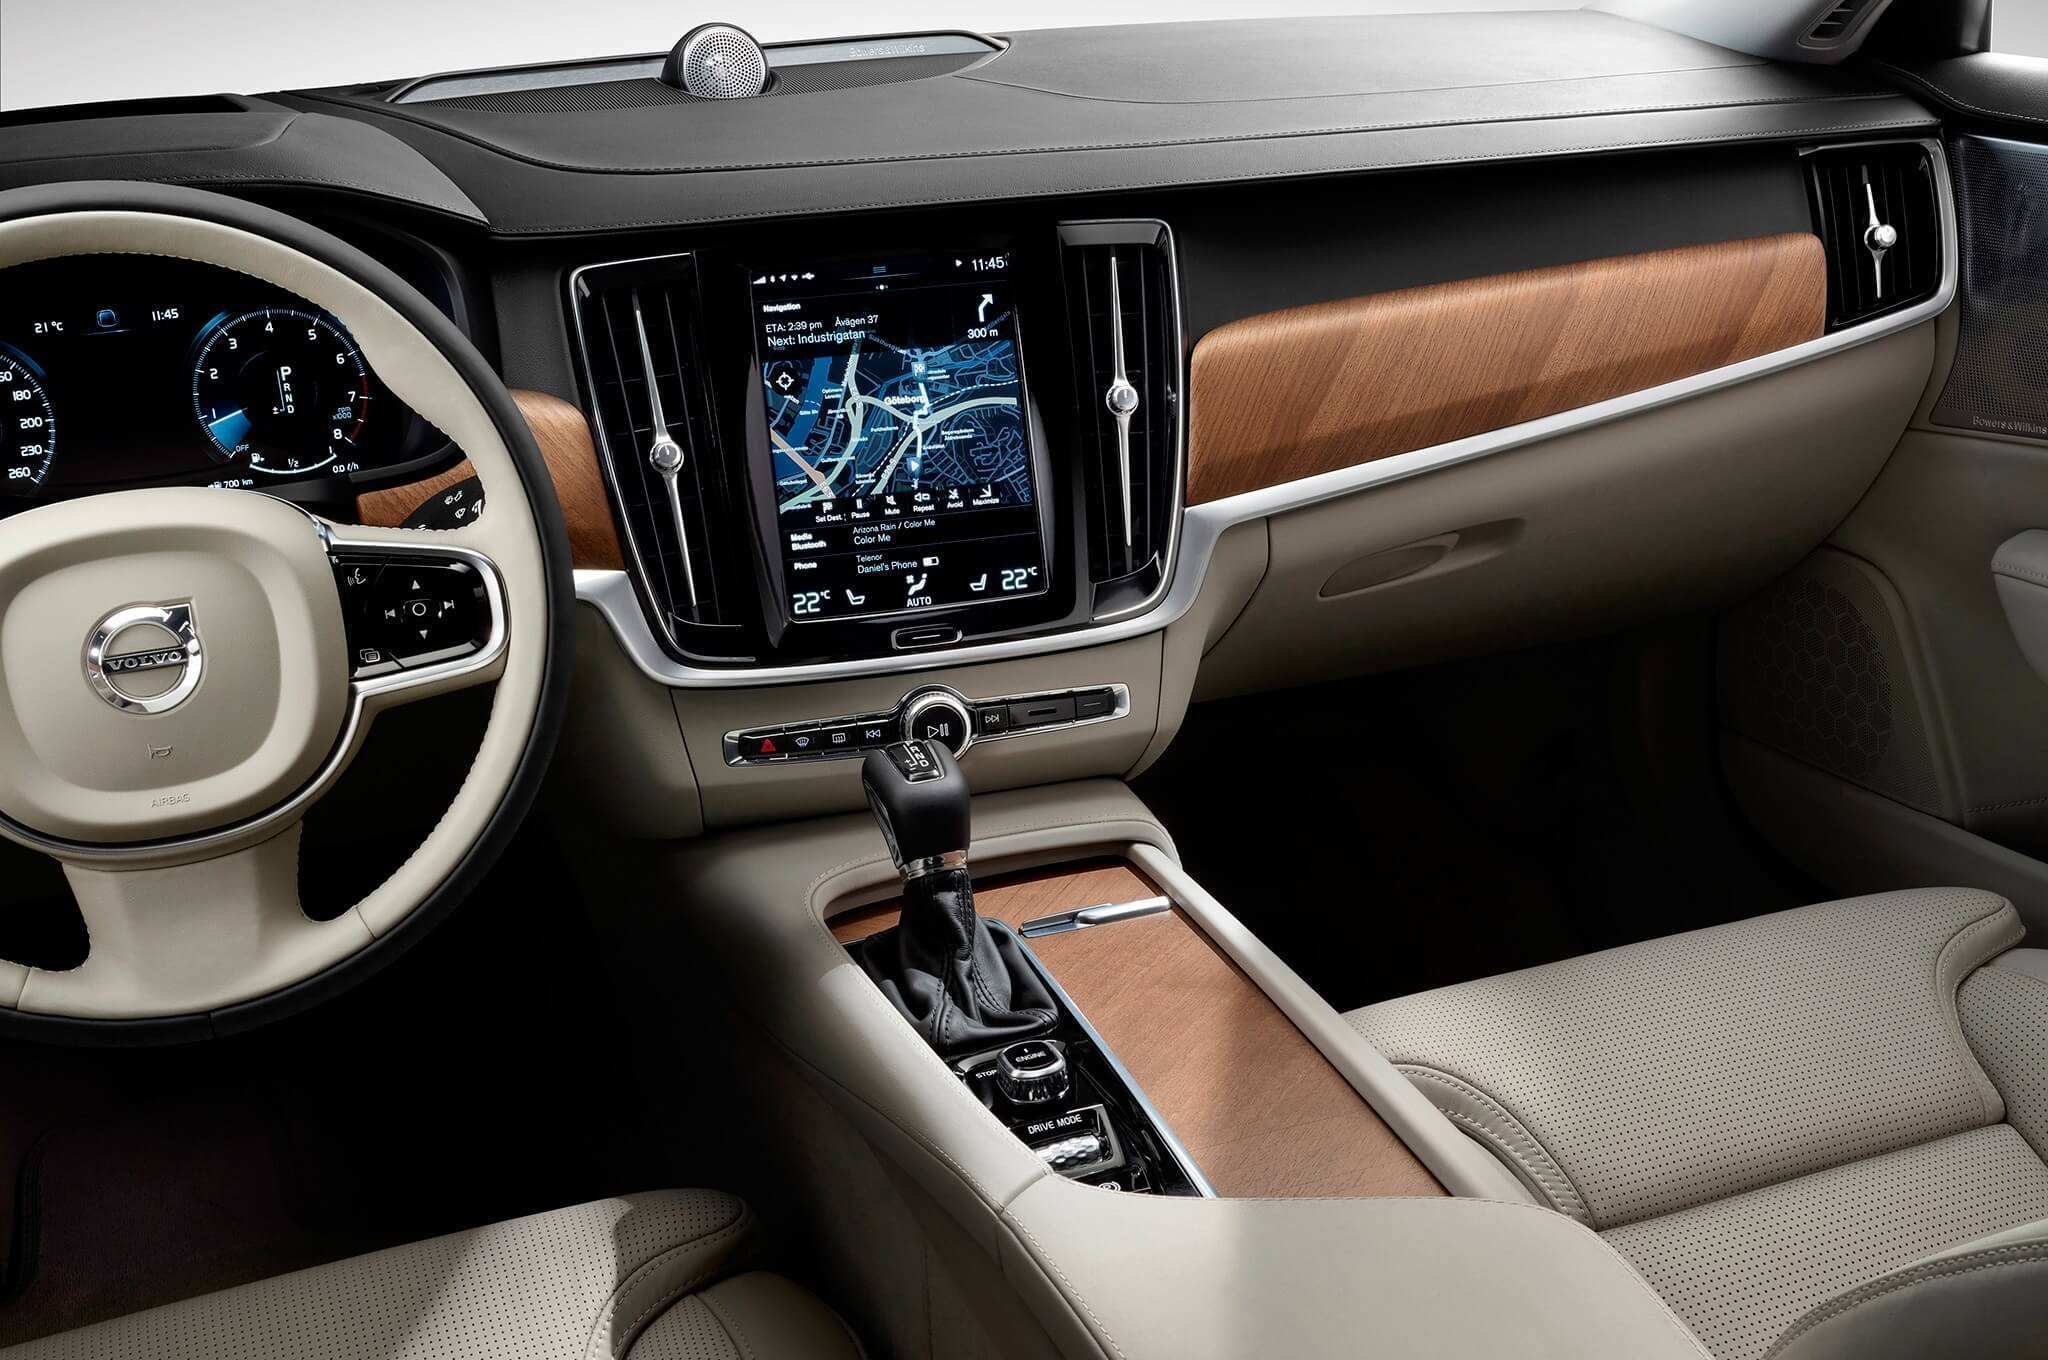 47 The Volvo Xc90 2019 Interior Images